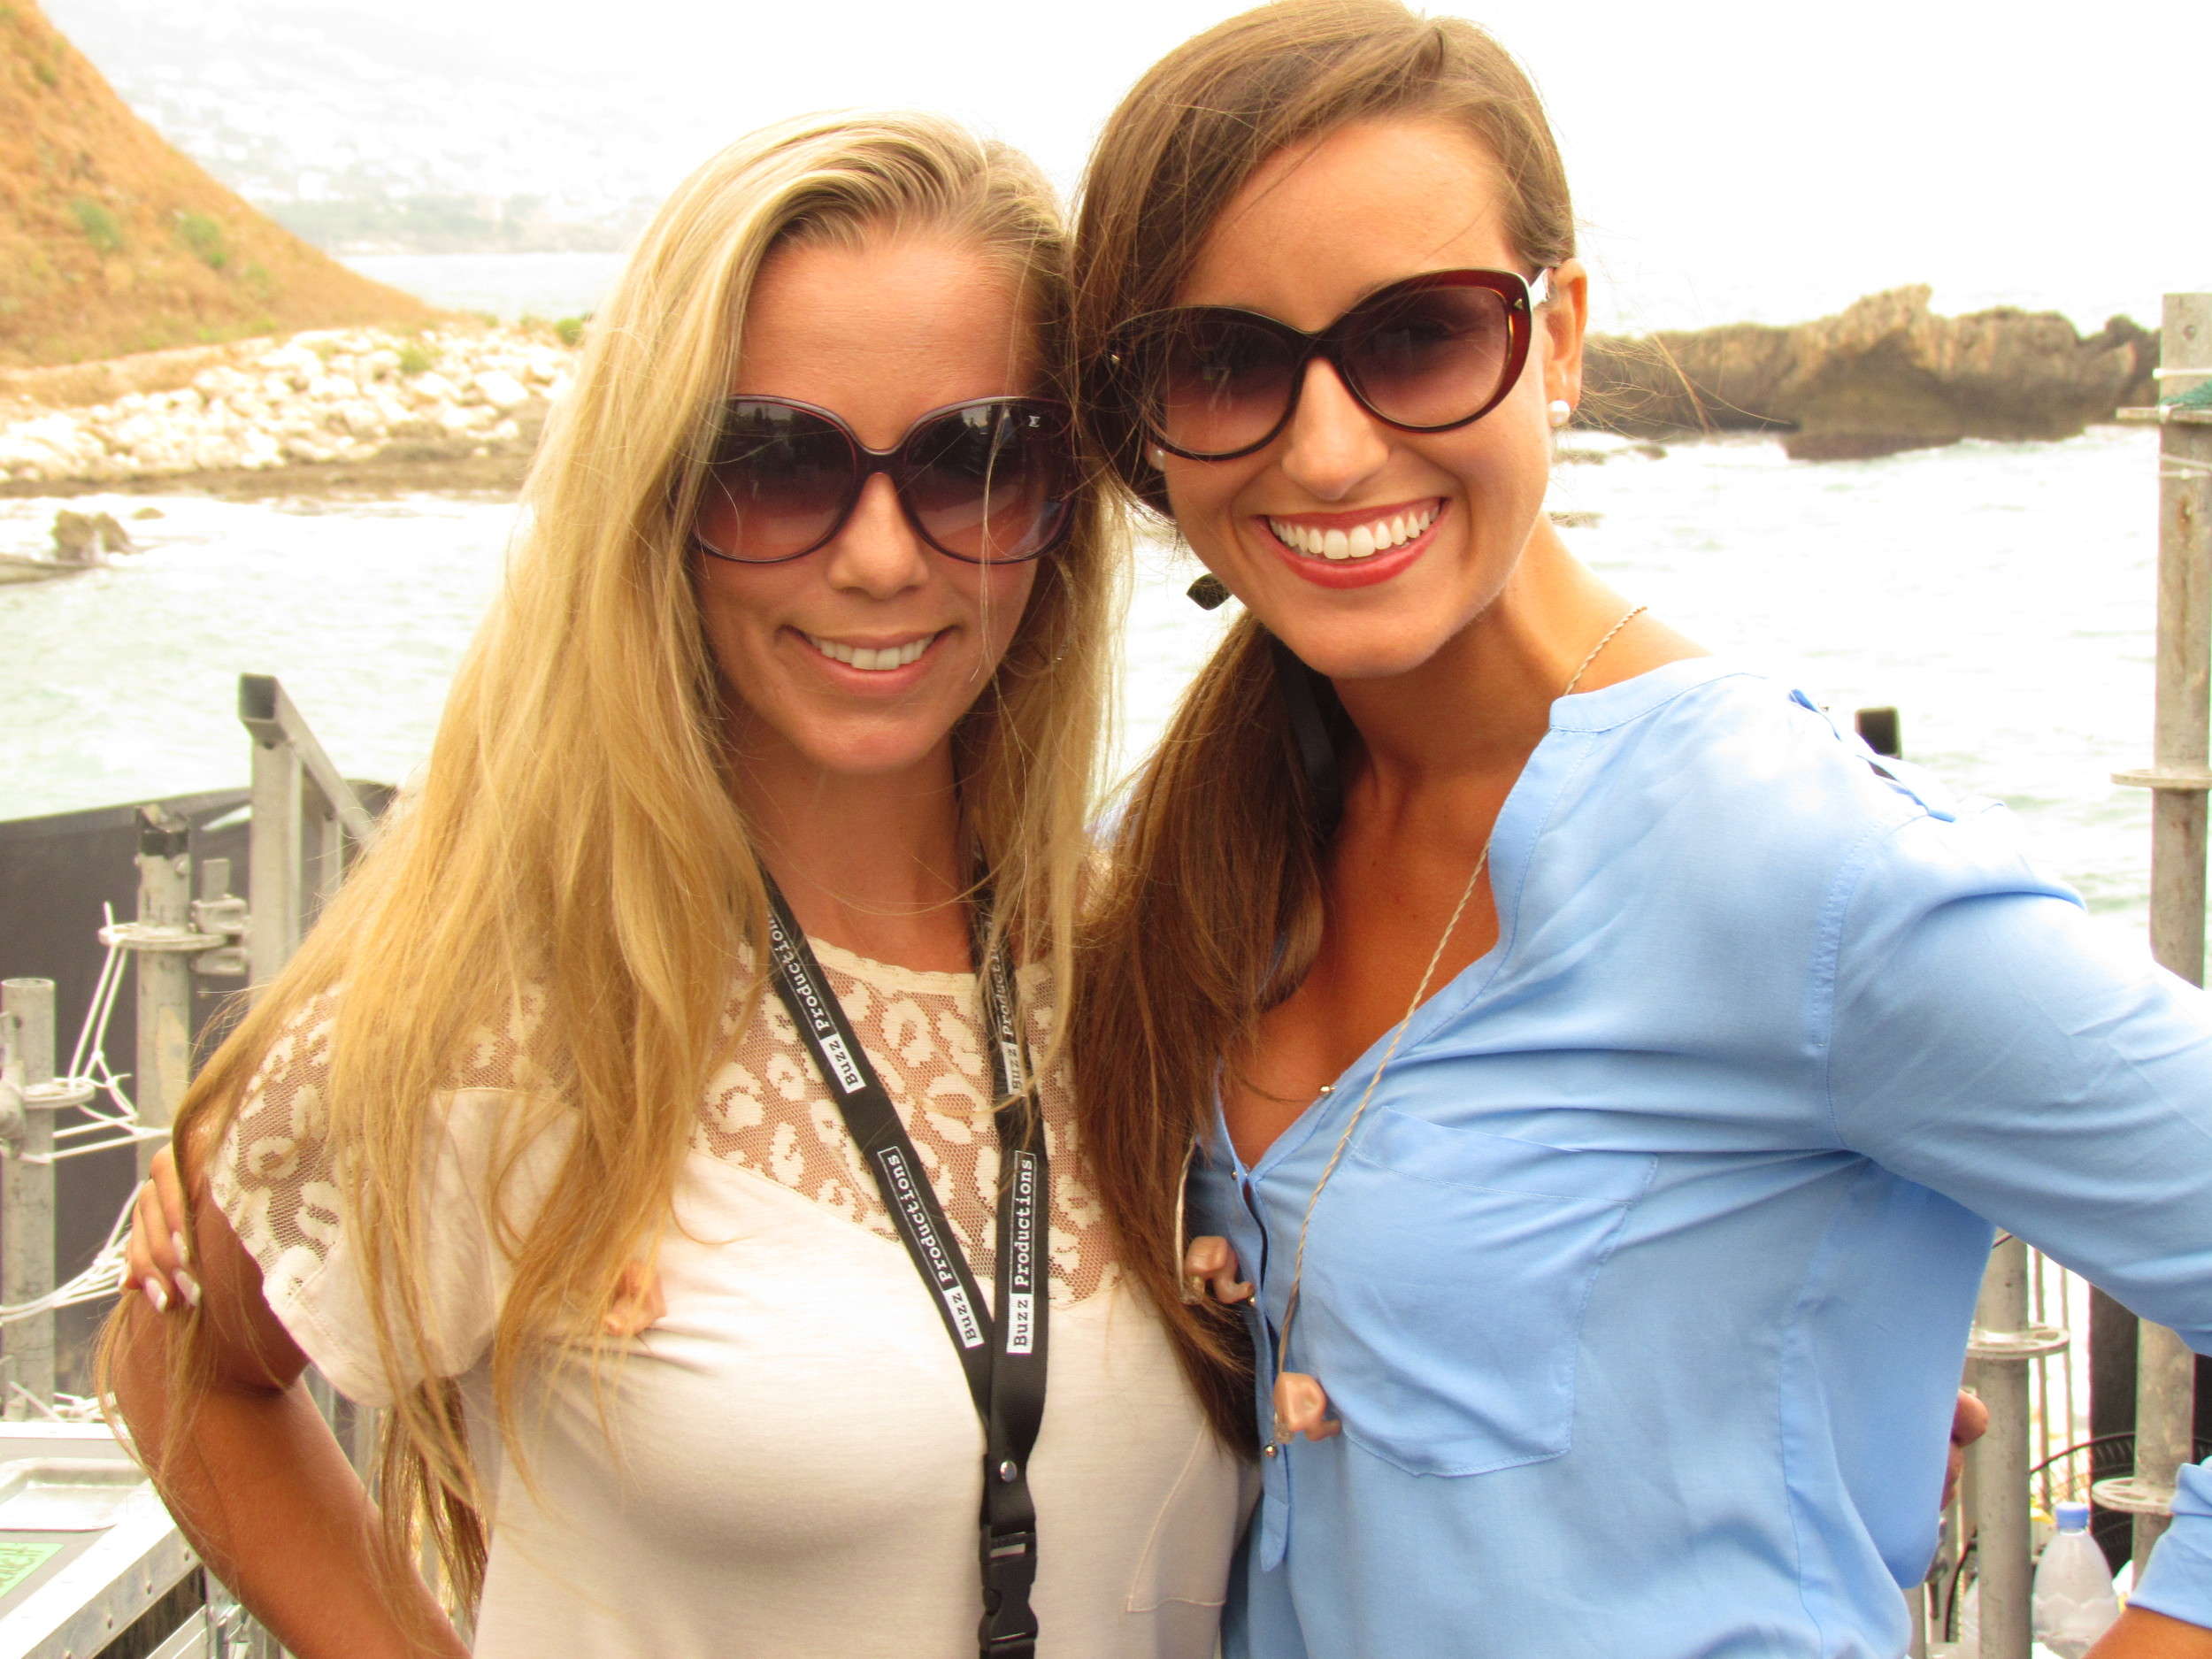 Lisa Lavie and Lauren at sound check at the Byblos Festival